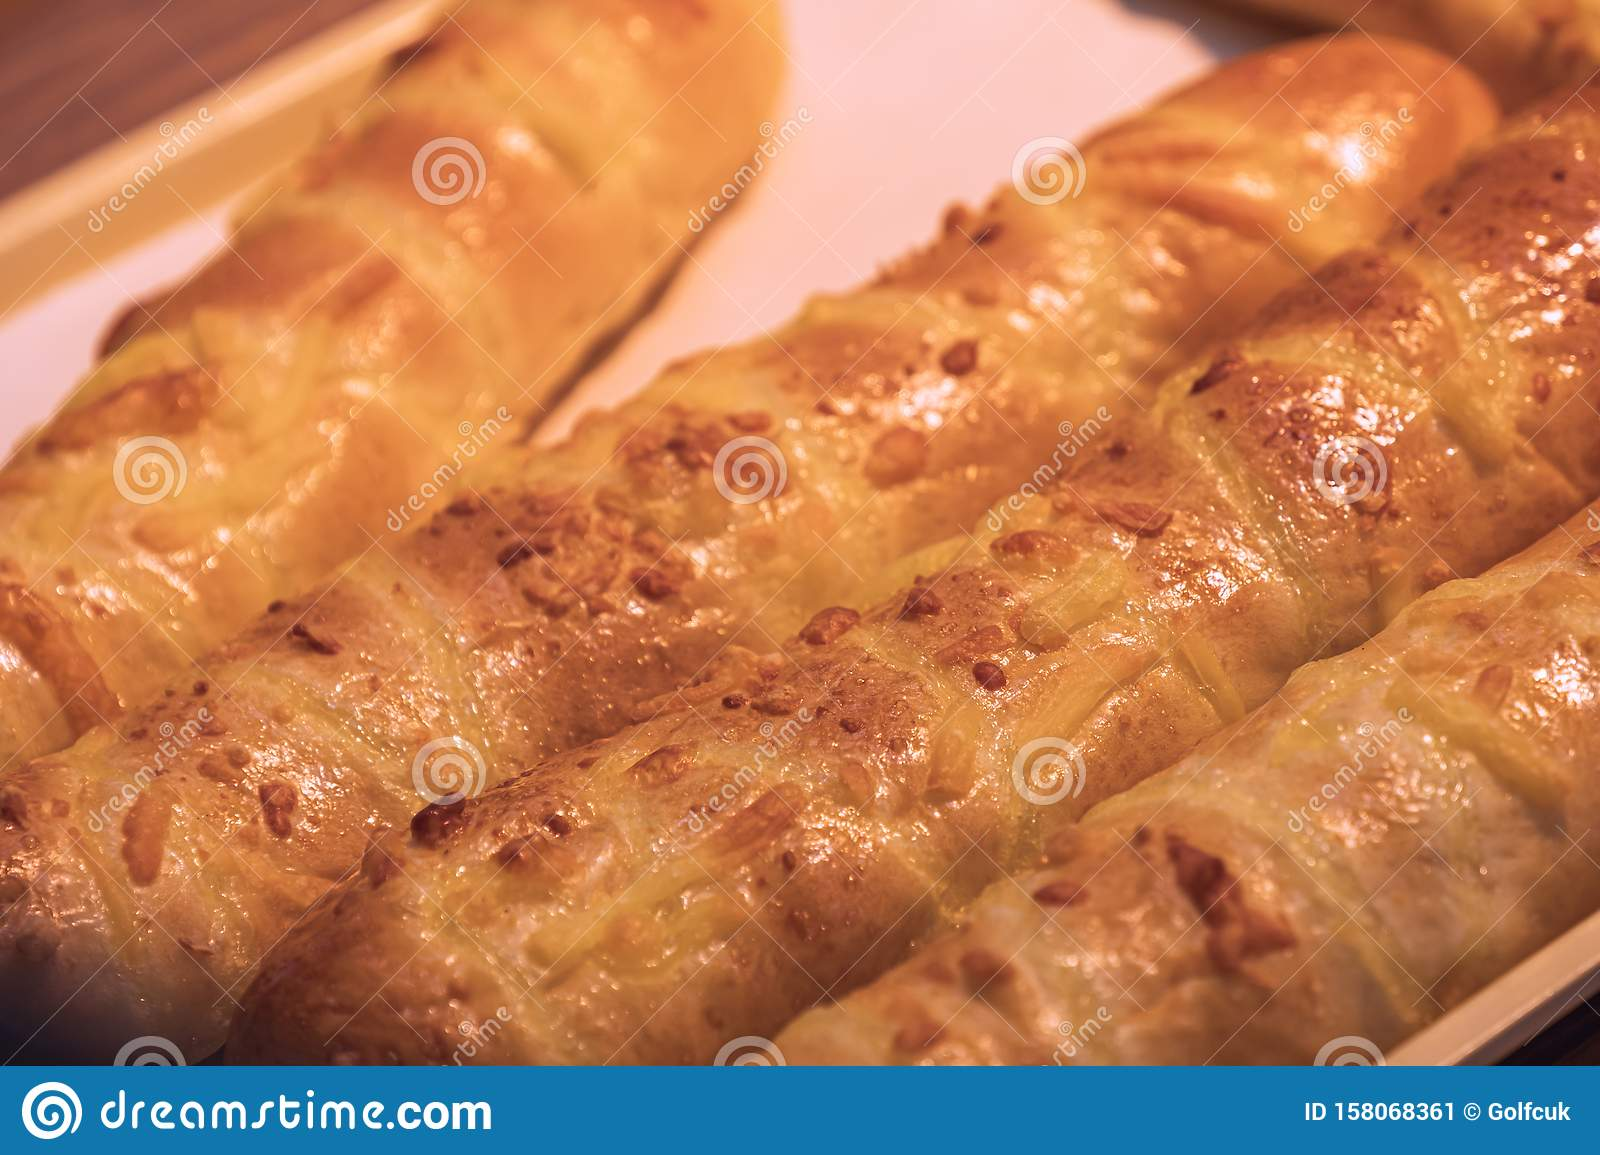 Cheese Stick Bread Stock Image Image Of Eating Cheddar 158068361